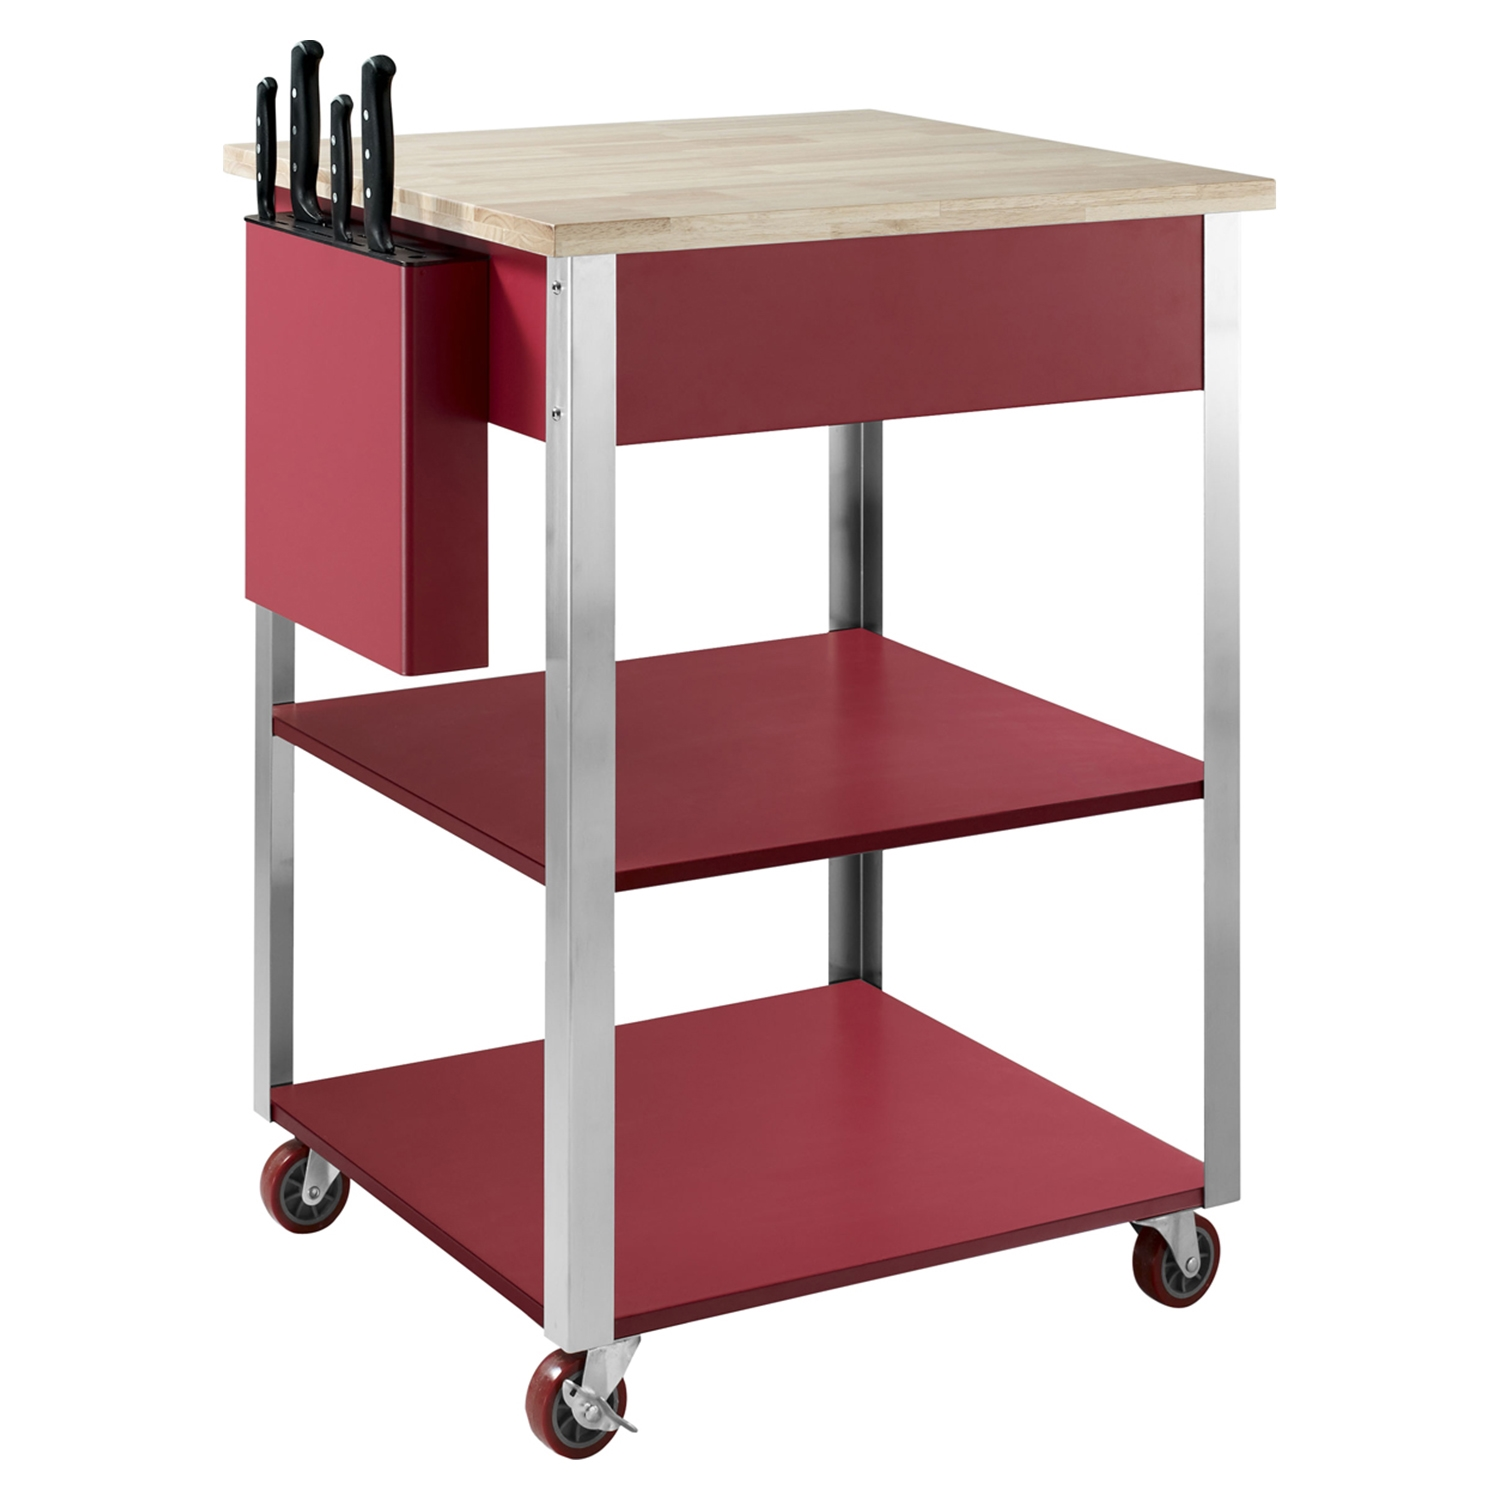 Culinary Prep Kitchen Cart - Red - CROS-CF3009-RE